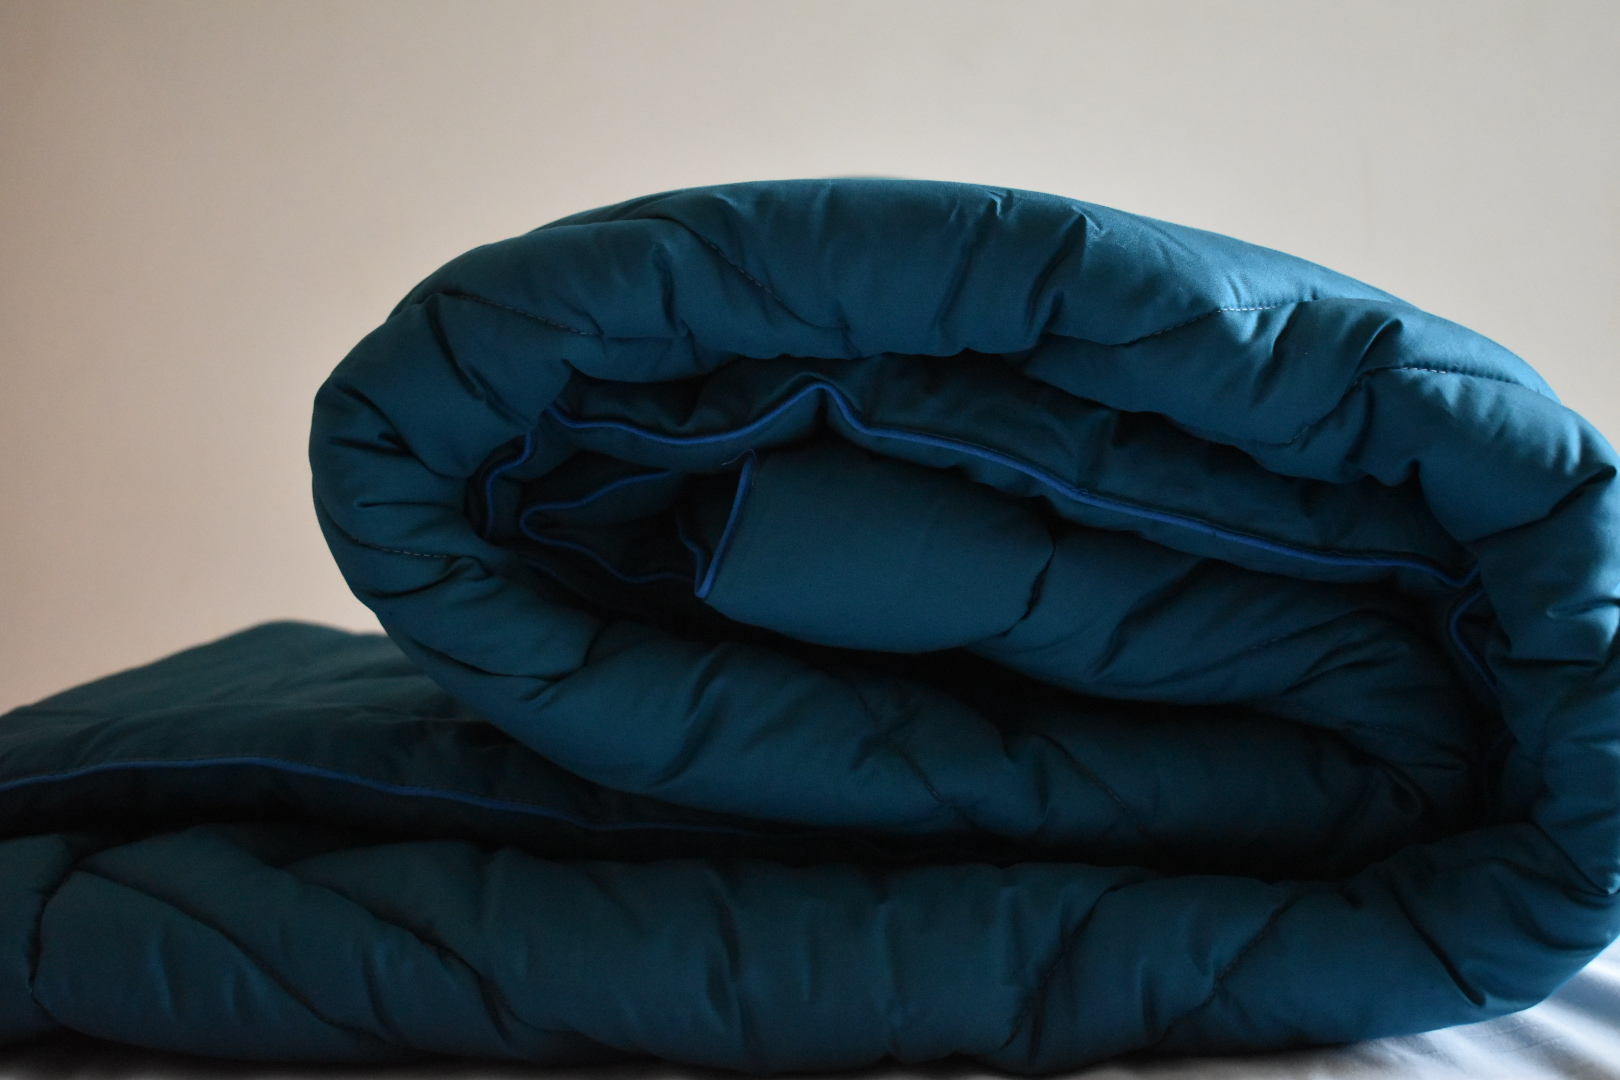 Luxury cool teal coverless duvet